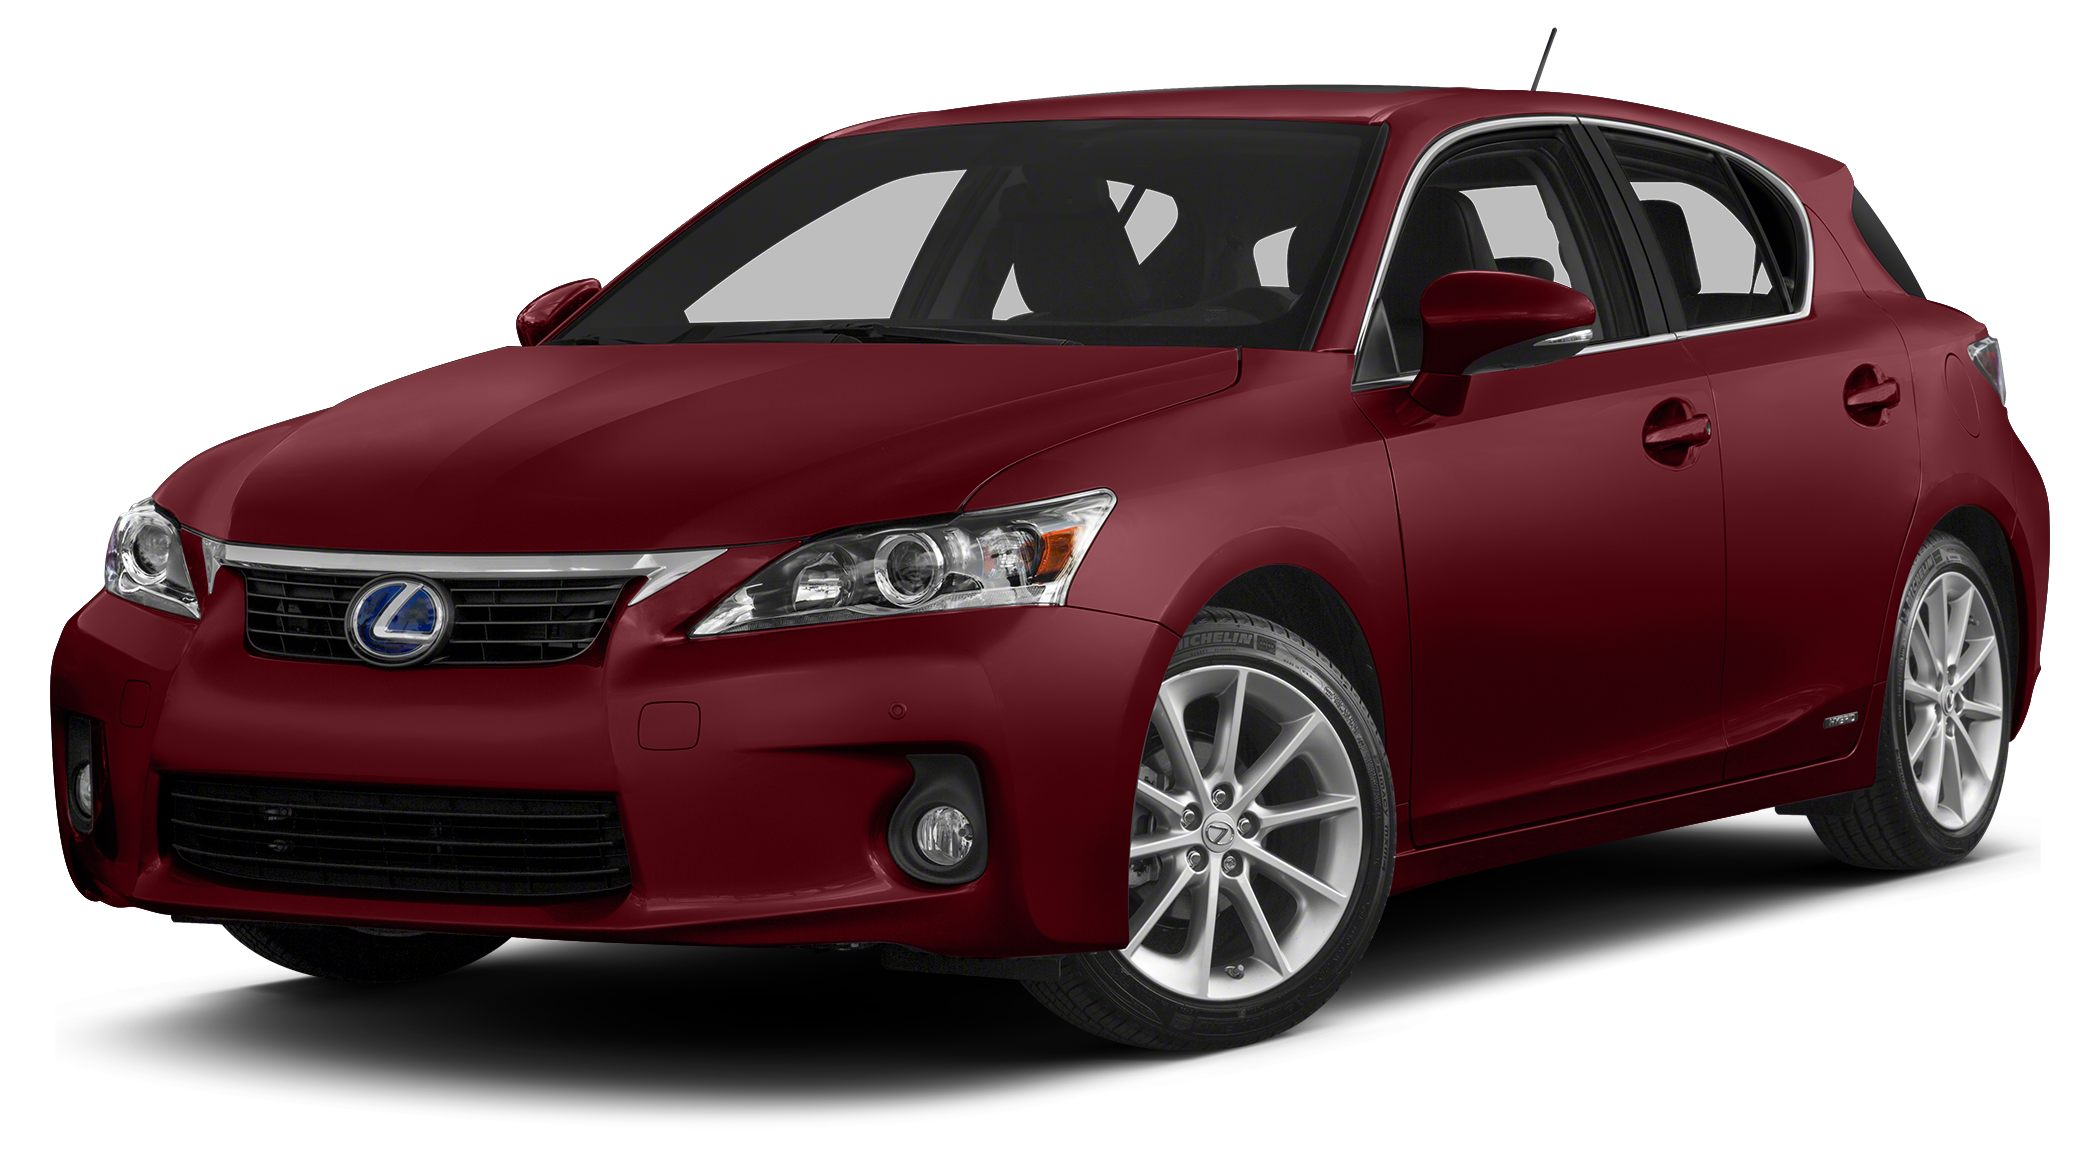 2013 Lexus CT 200h Base Clean CARFAX Matador Red Mica 2013 Lexus CT 200h FWD Continuously Variabl